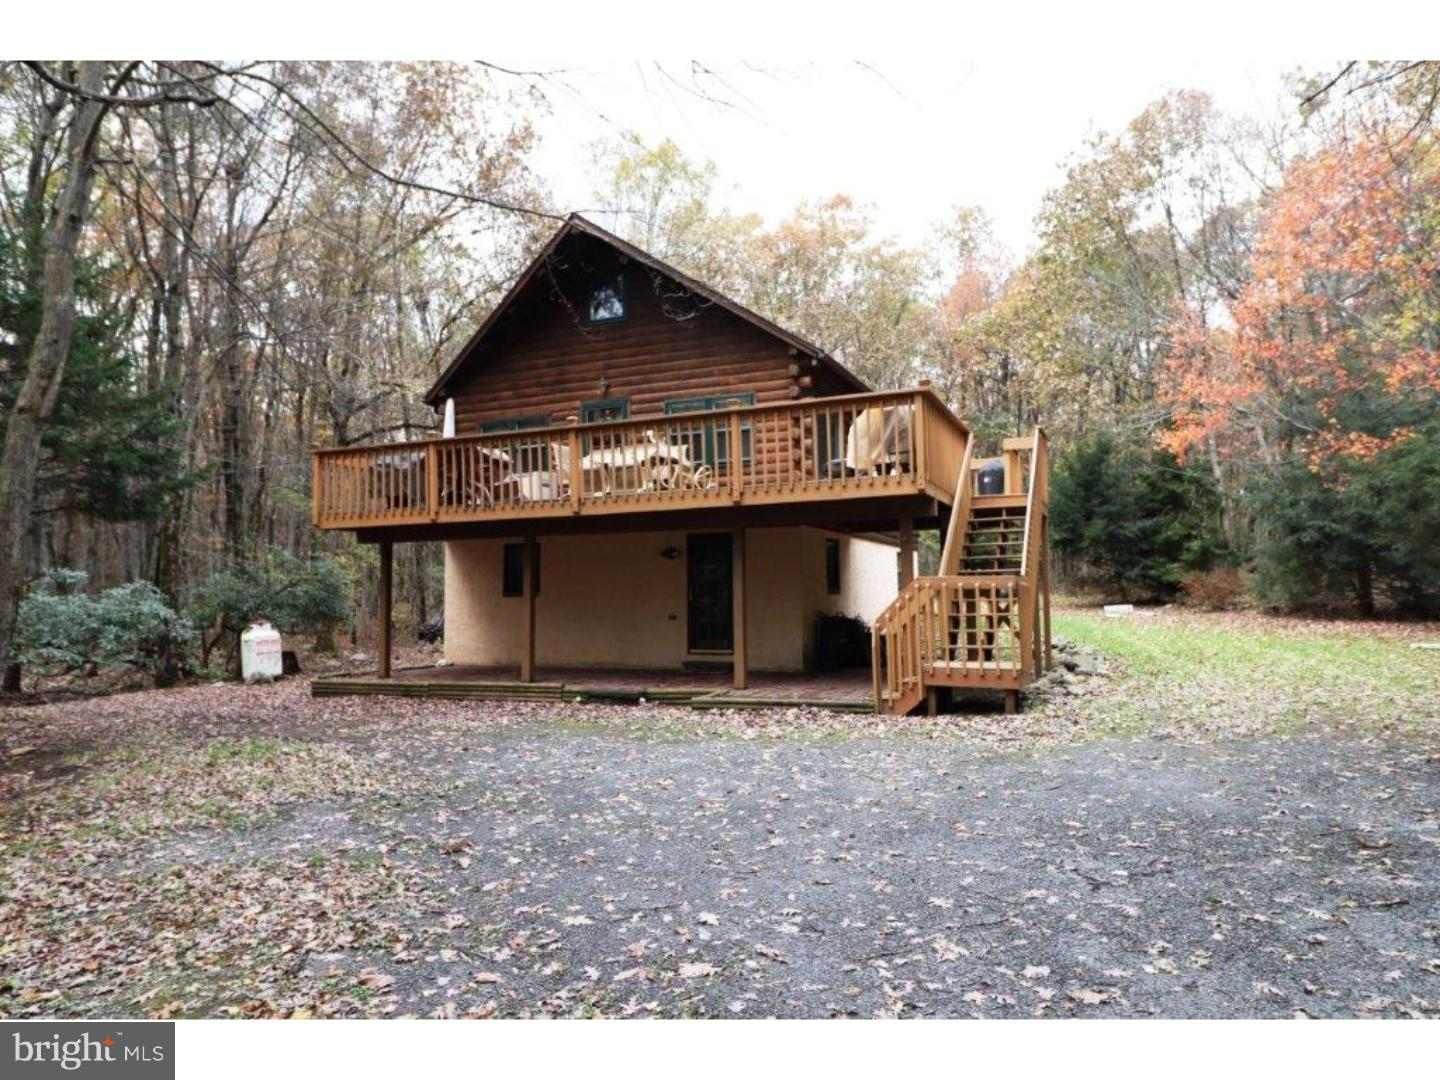 49 DOGWOOD DRIVE, JIM THORPE, PA 18229